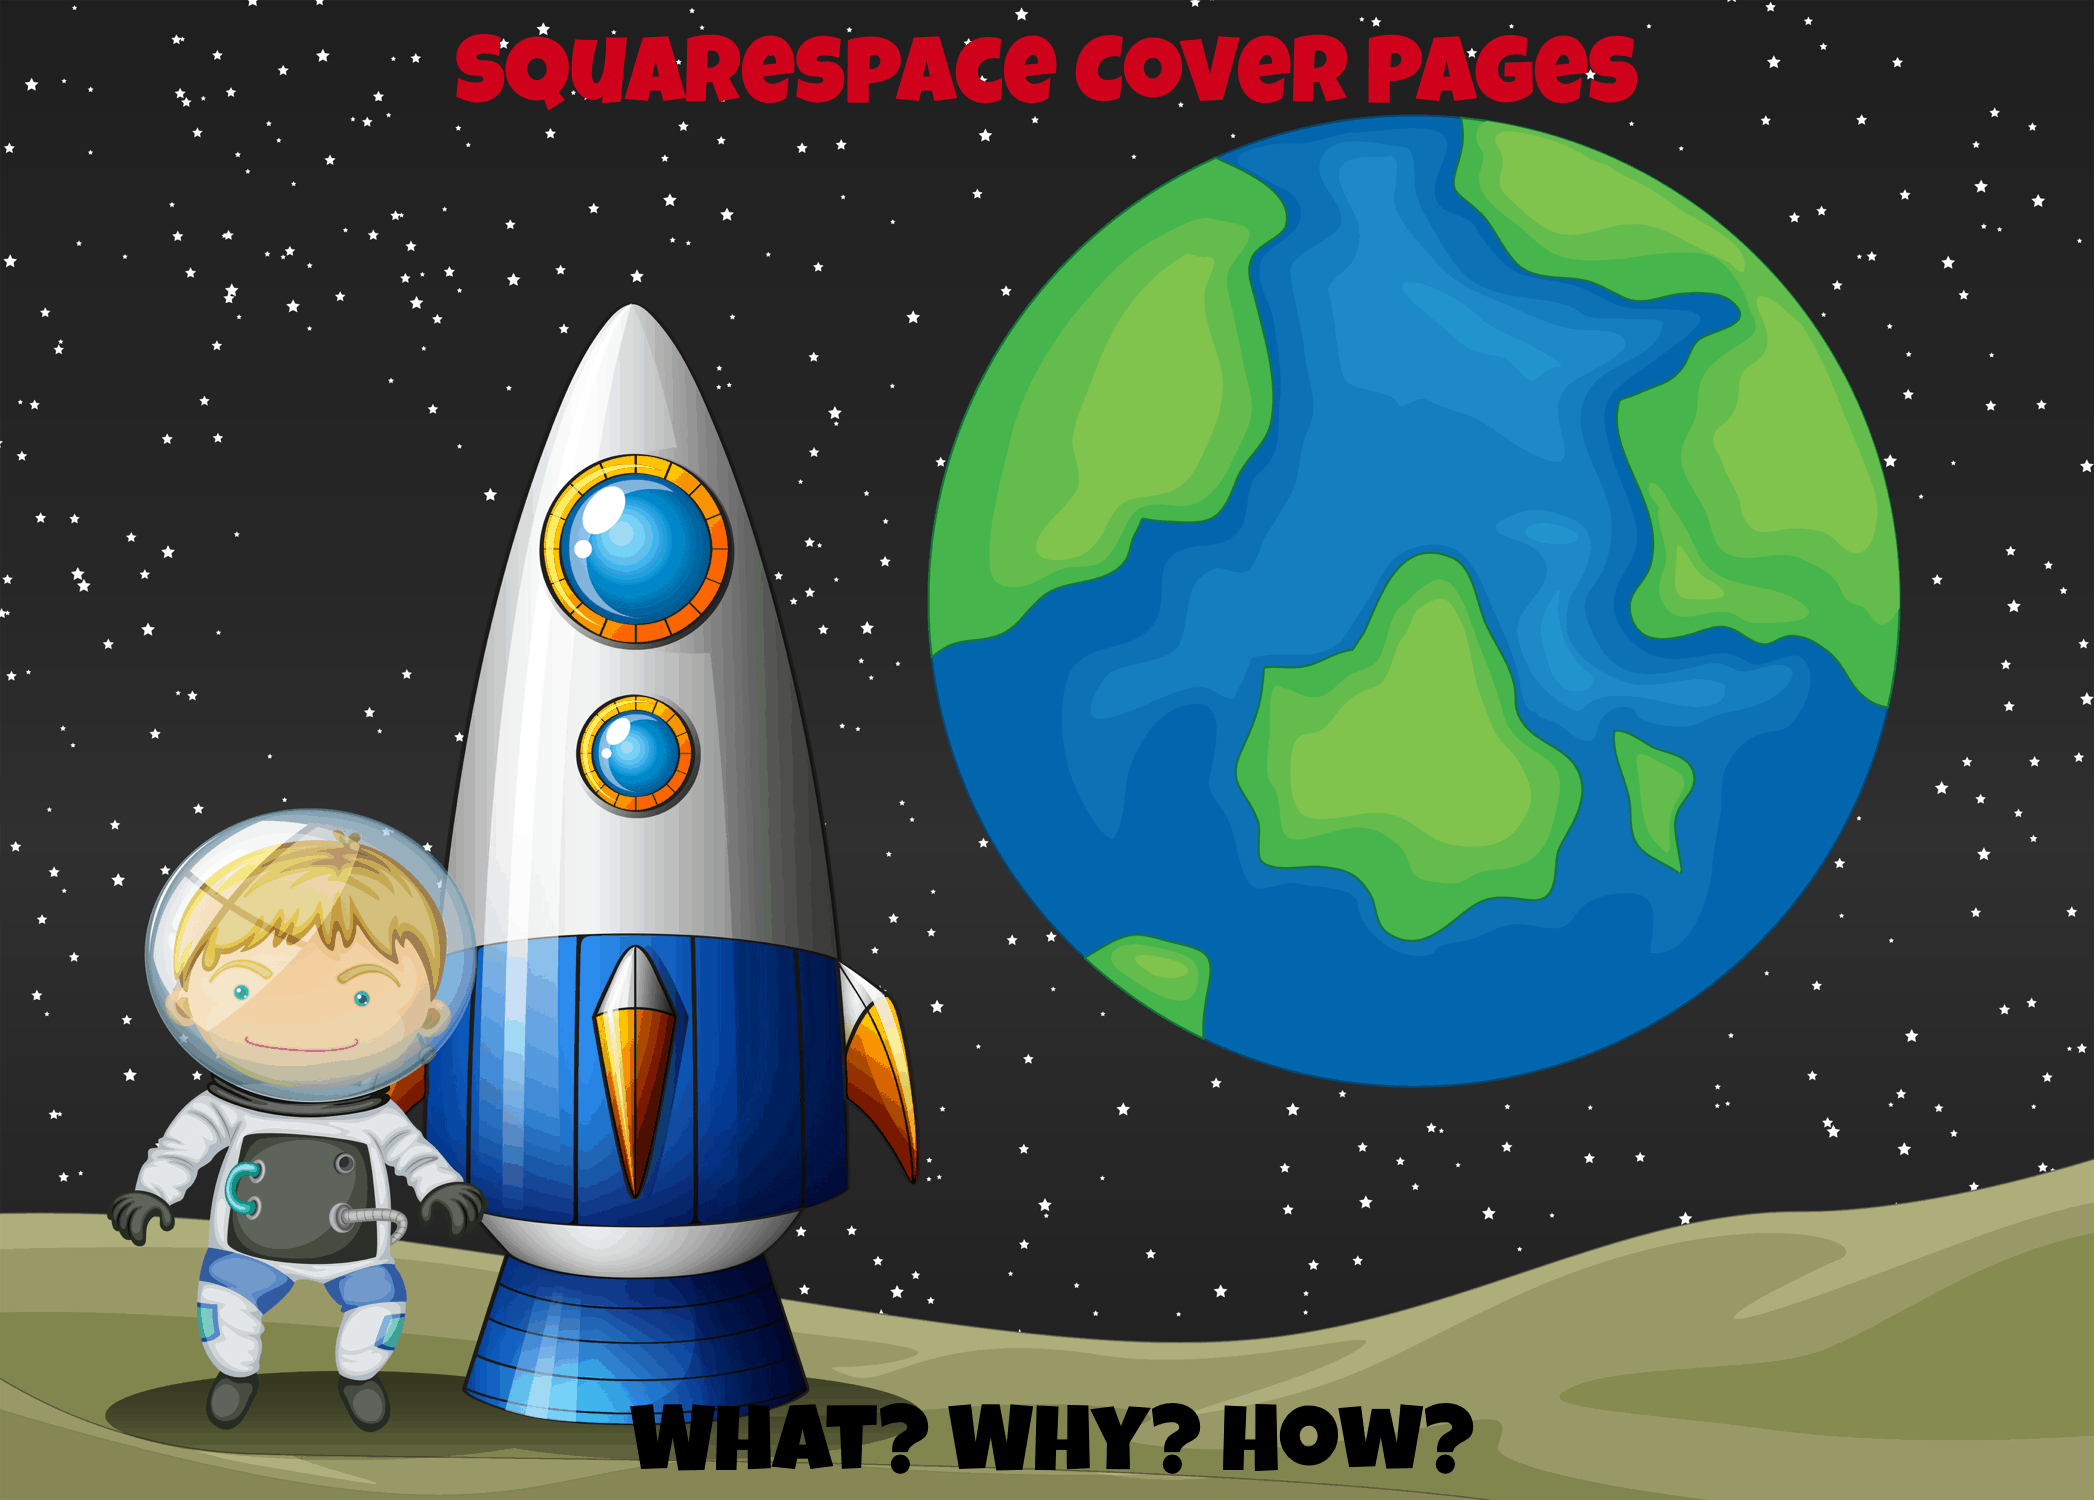 squarespace cover pages